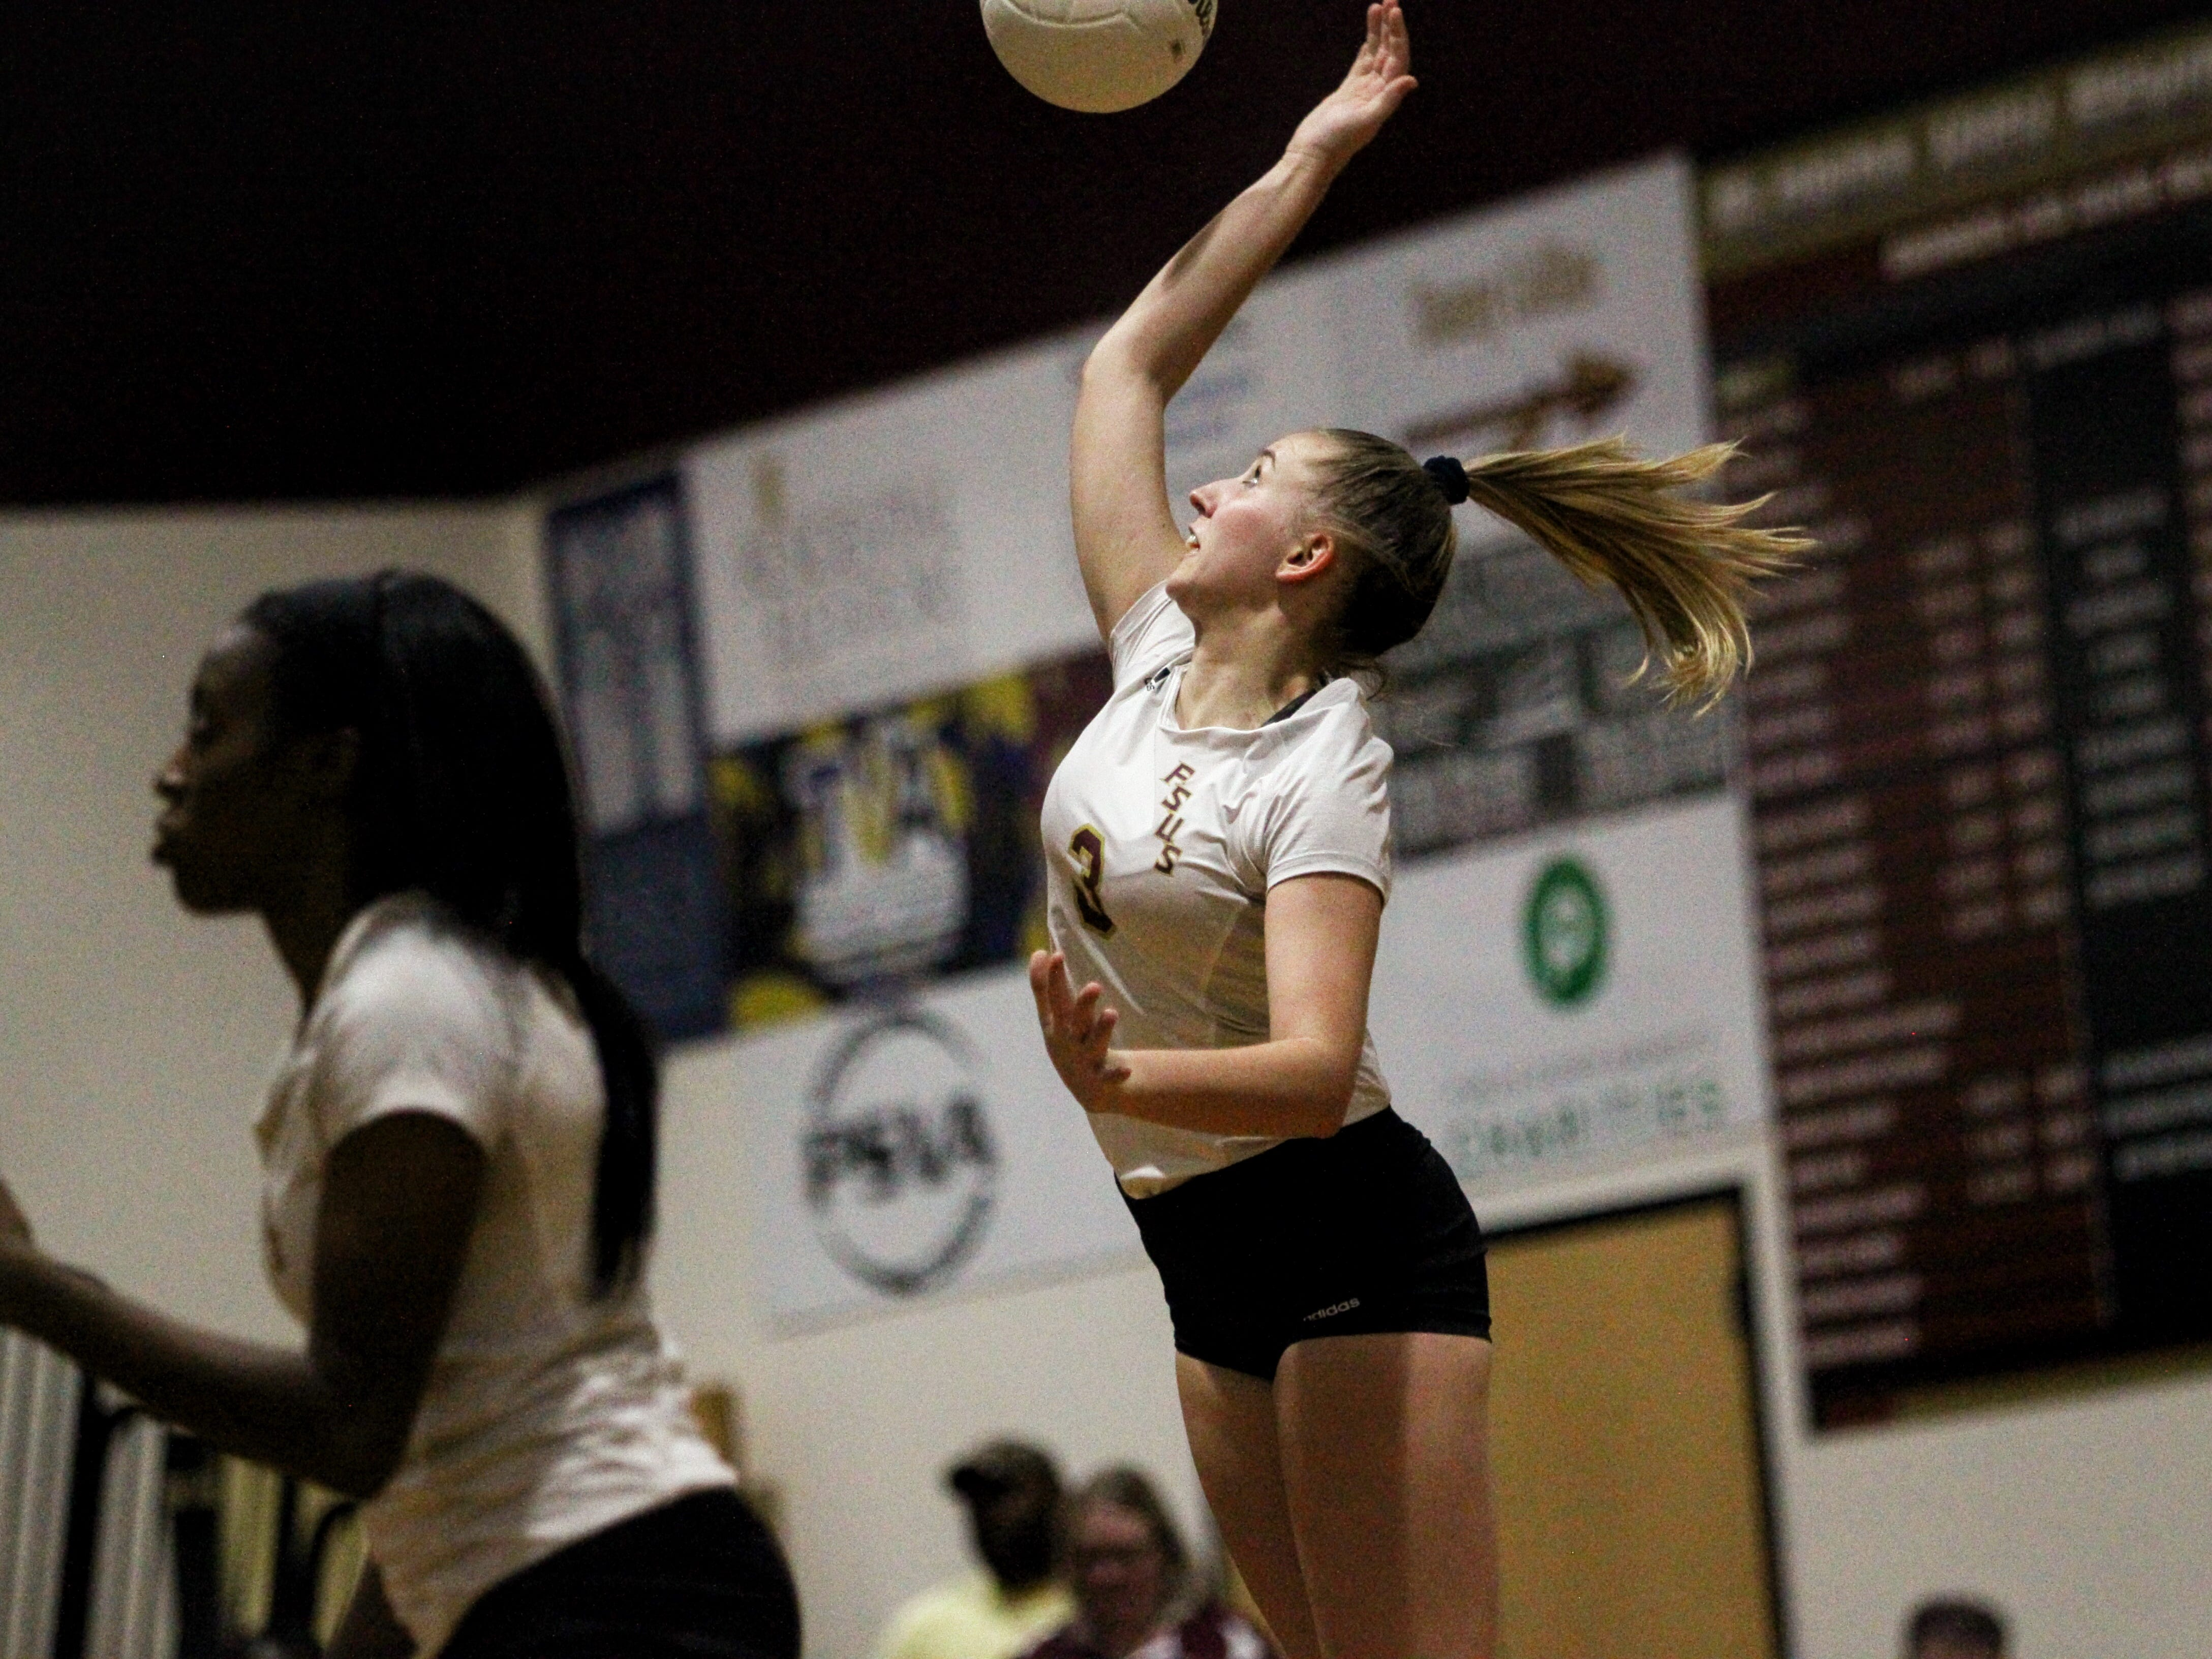 Florida High's Carlee Allbaugh serves during the Seminoles' win over Wakulla.